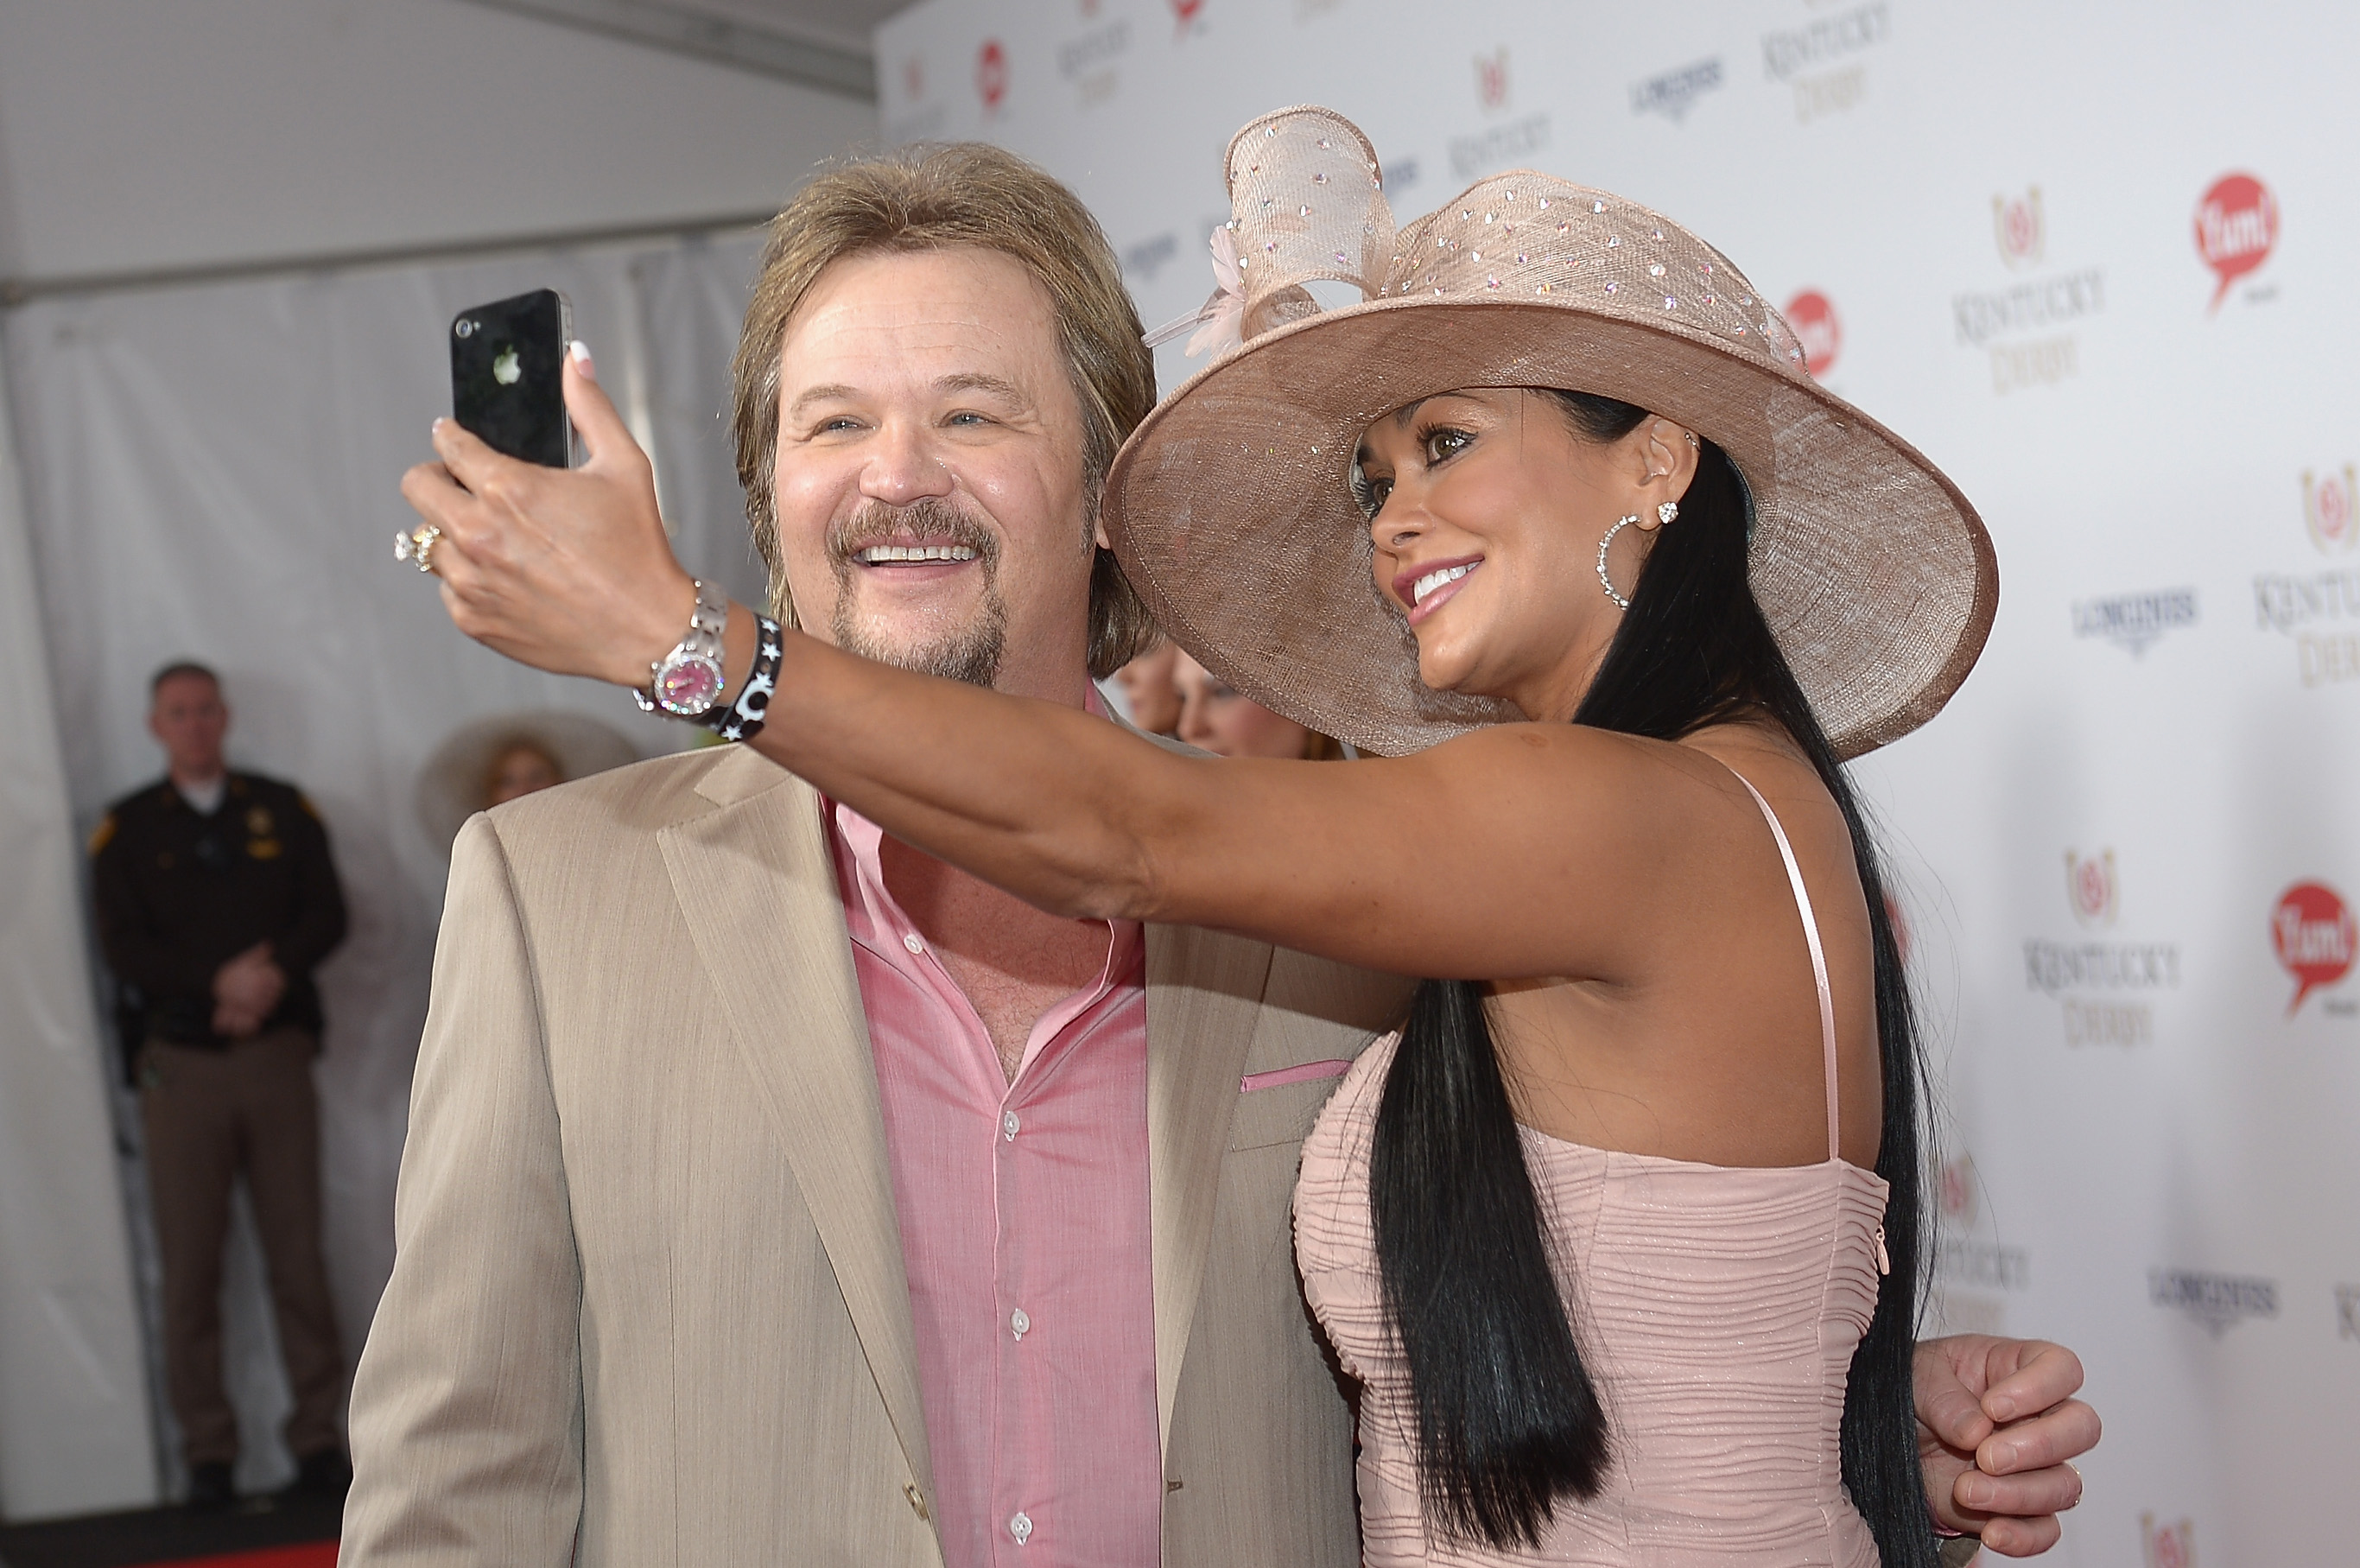 Travis Tritt and Theresa Nelson toast with Moet & Chandon at the 140th Kentucky Derby at Churchill Downs on May 3, 2014 in Louisville, Kentucky.  (Photo by Gustavo Caballero/Getty Images for Moet & Chandon)